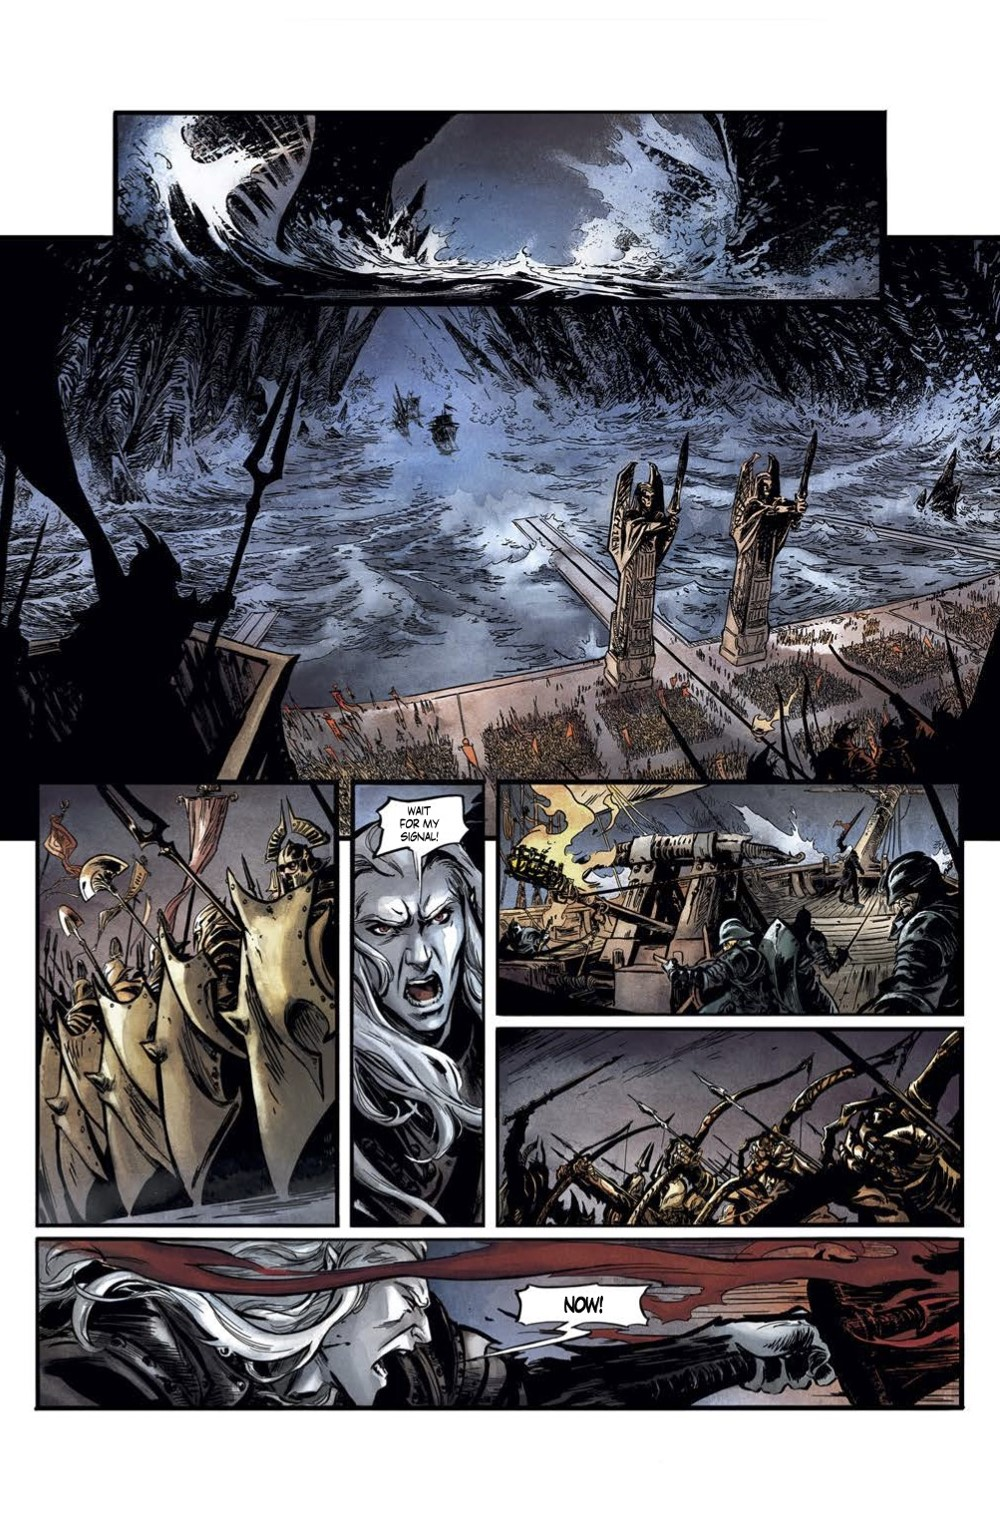 Elric-The-Deaming-City-2-Spread-3 ComicList Previews: ELRIC THE DREAMING CITY #2